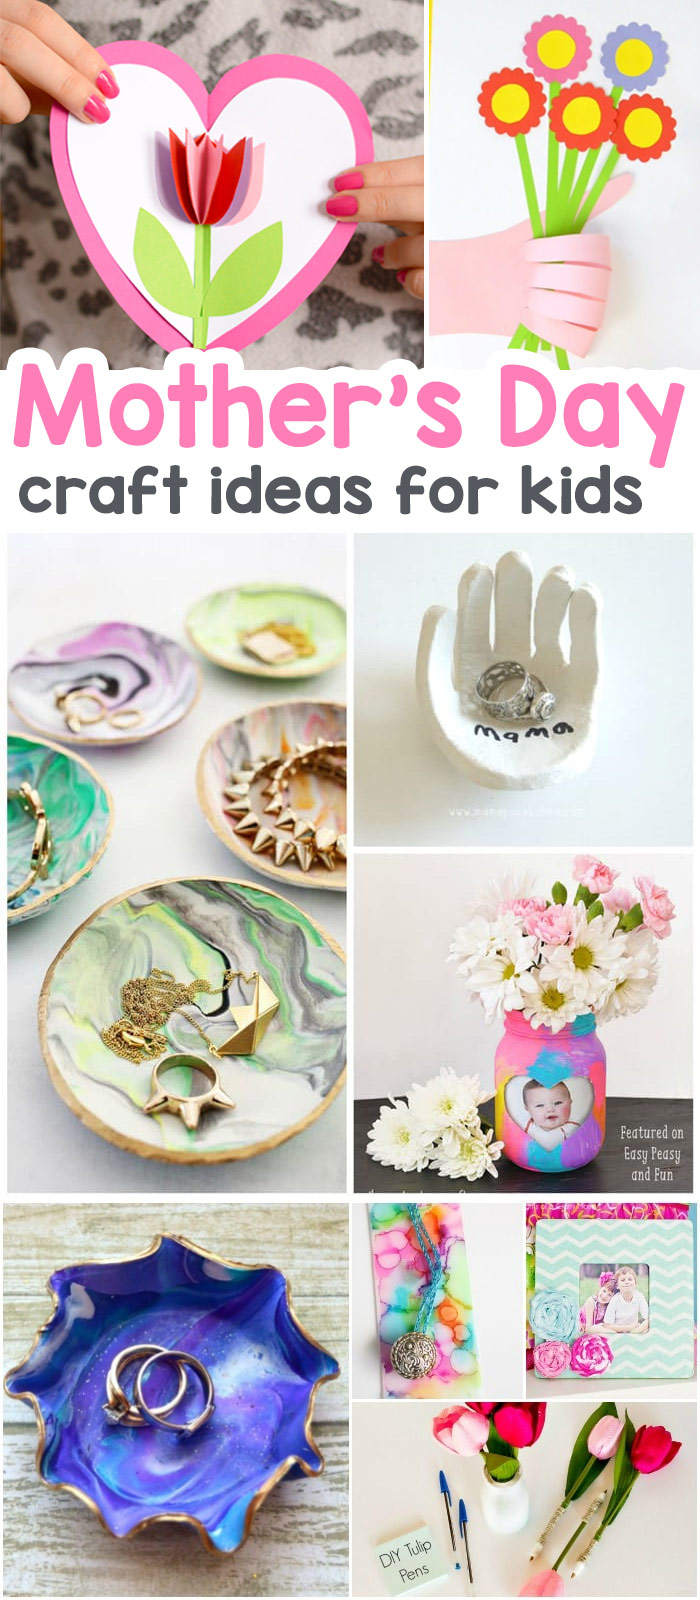 Awesome Diy Mother's Day Gifts 25 Mothers Day Crafts For Kids Most Wonderful Cards Keepsakes